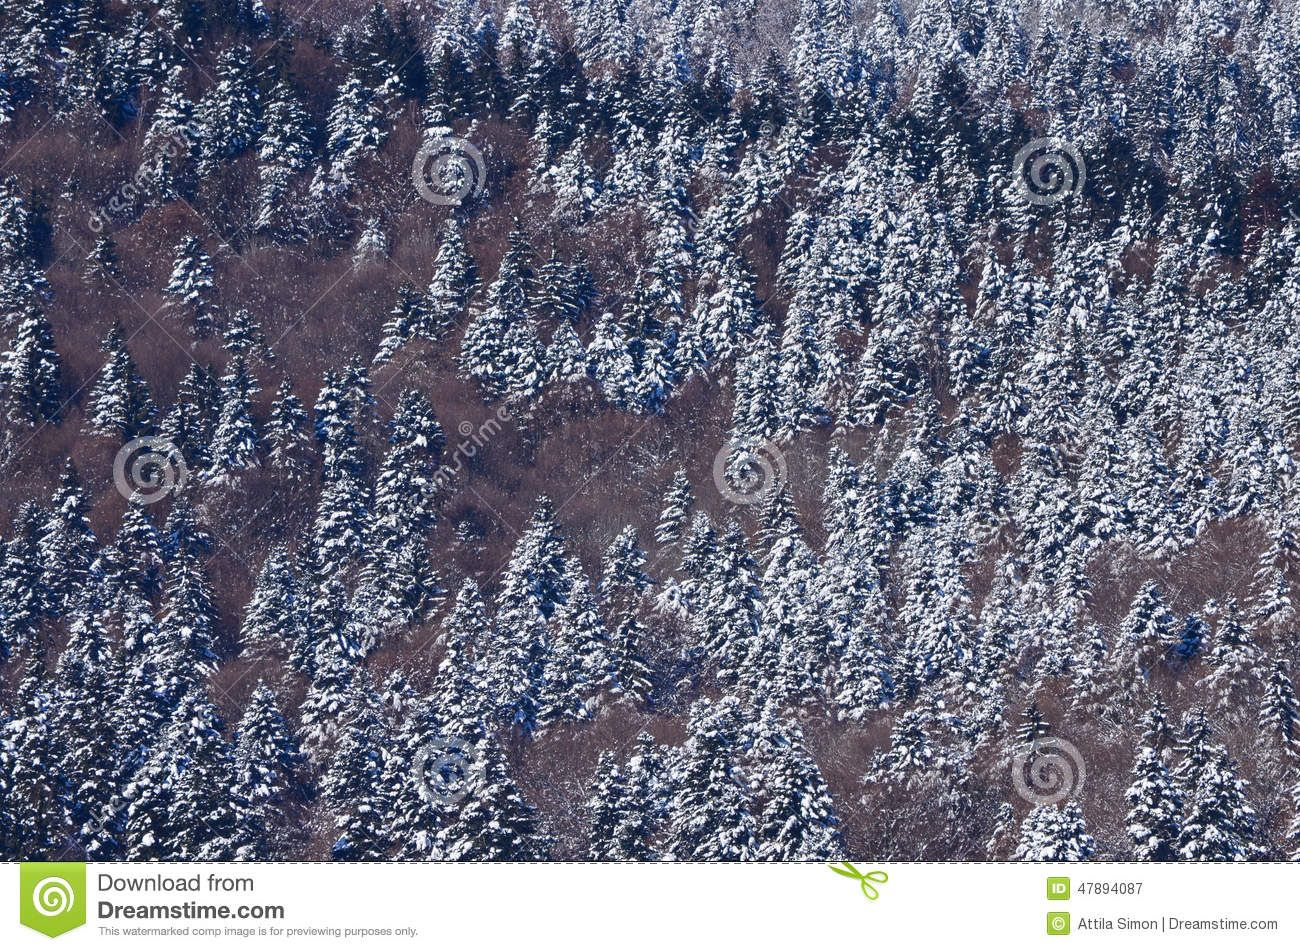 Aerial winter pine forest, frozen trees at Baile Tusnad, Romania.